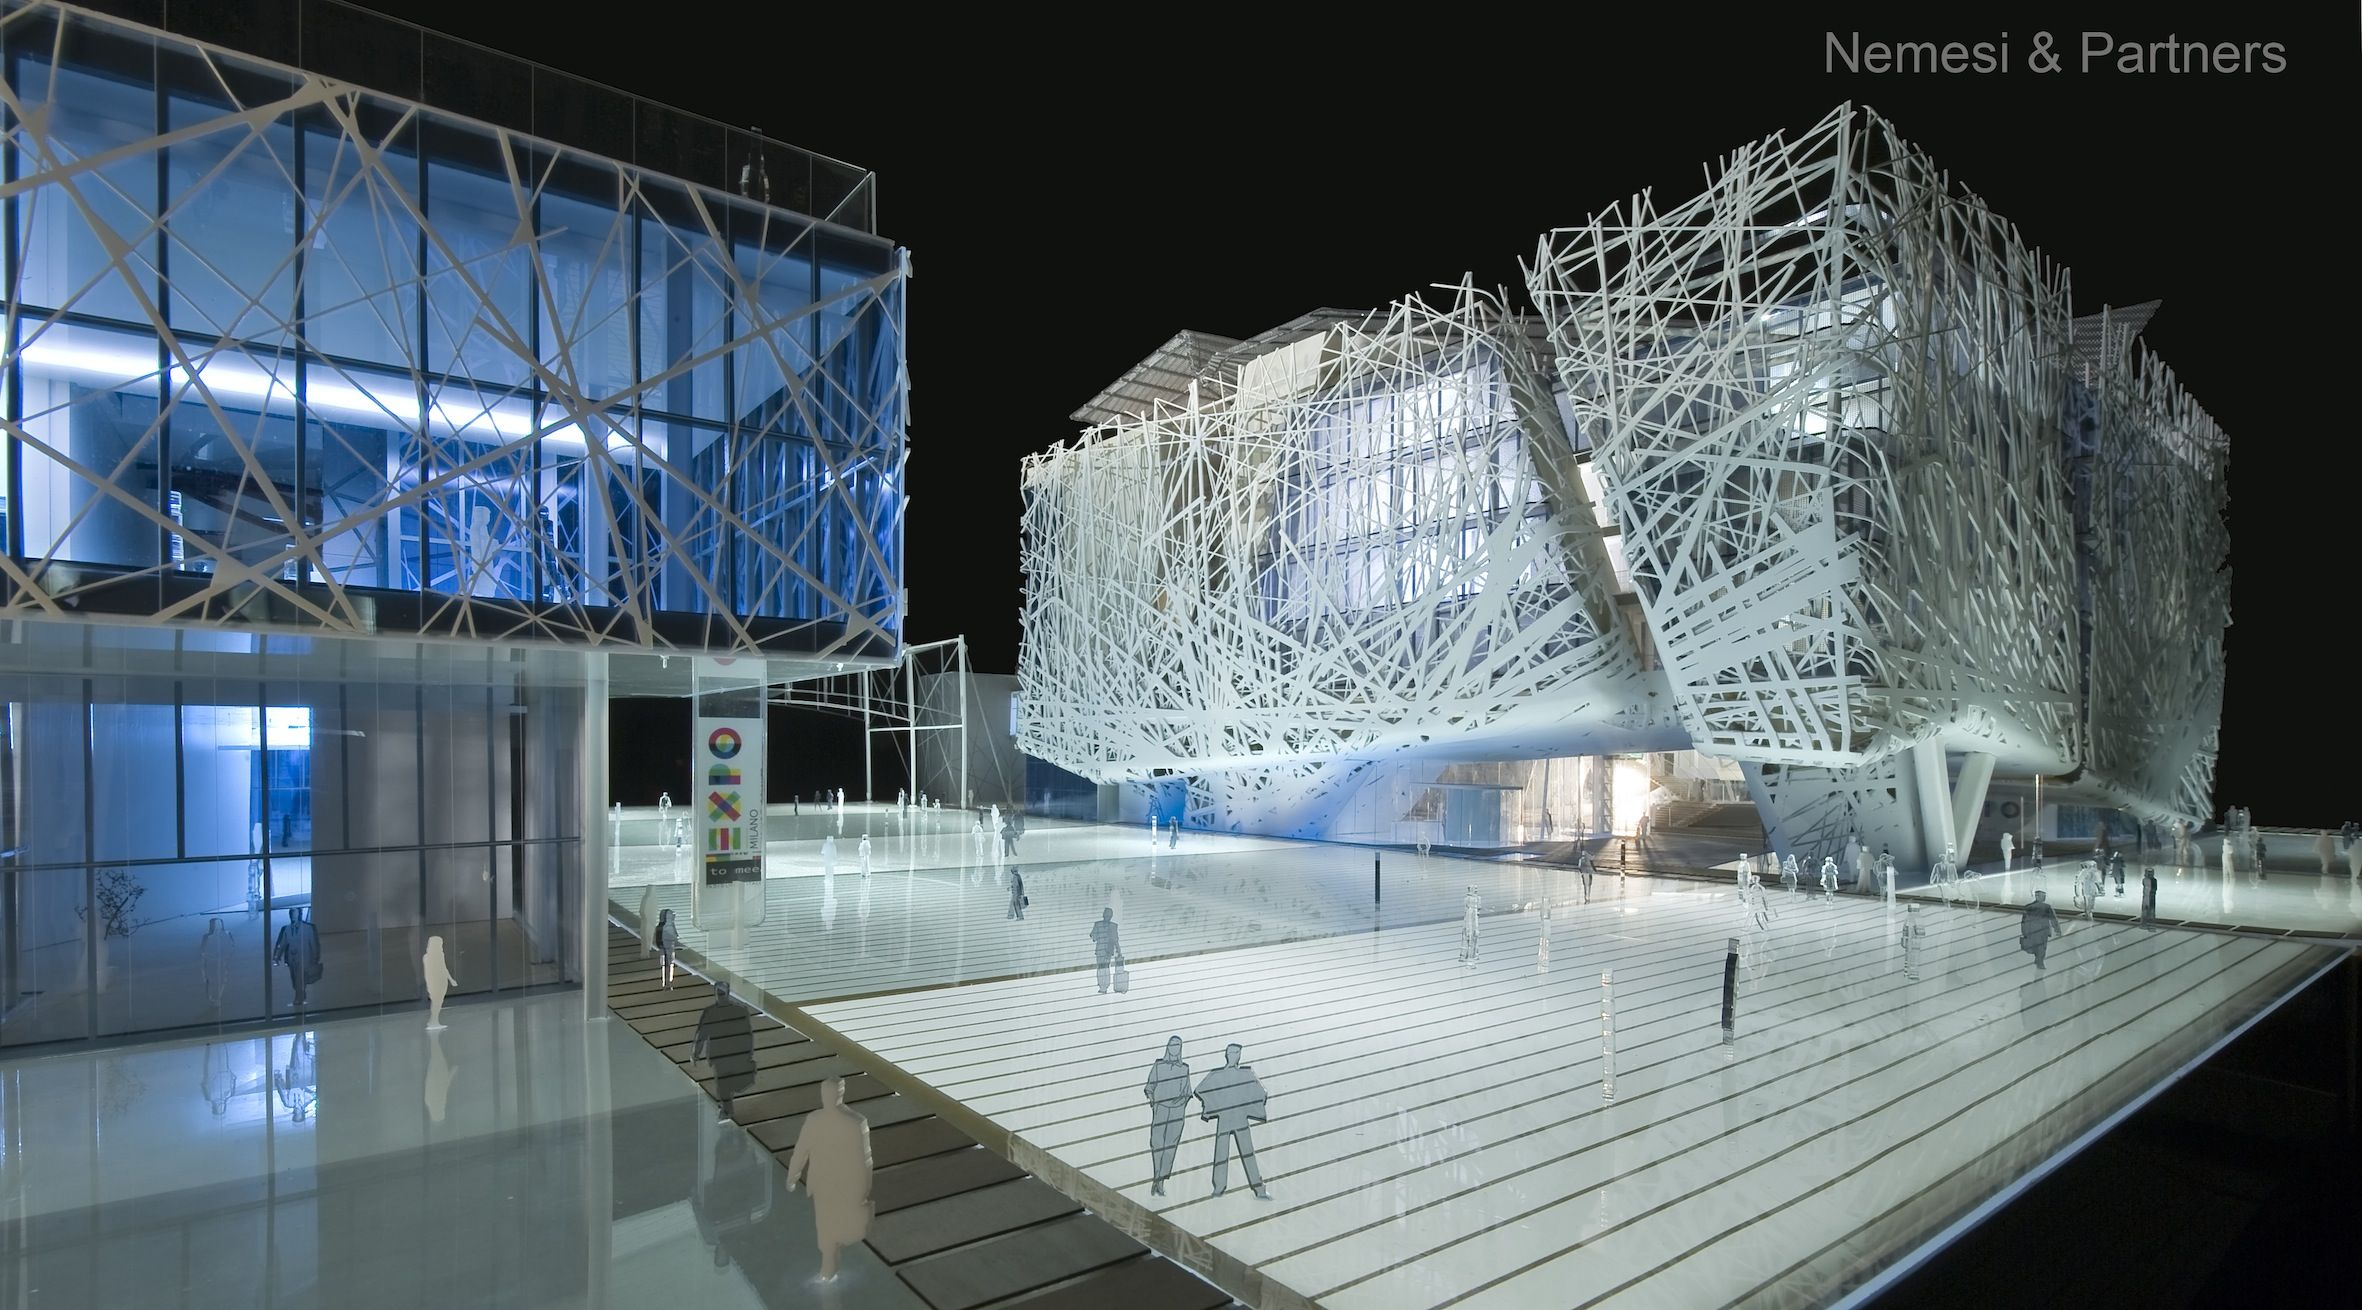 The future Italy Pavilion (by Nemesi & Partners Srl, Proger Spa